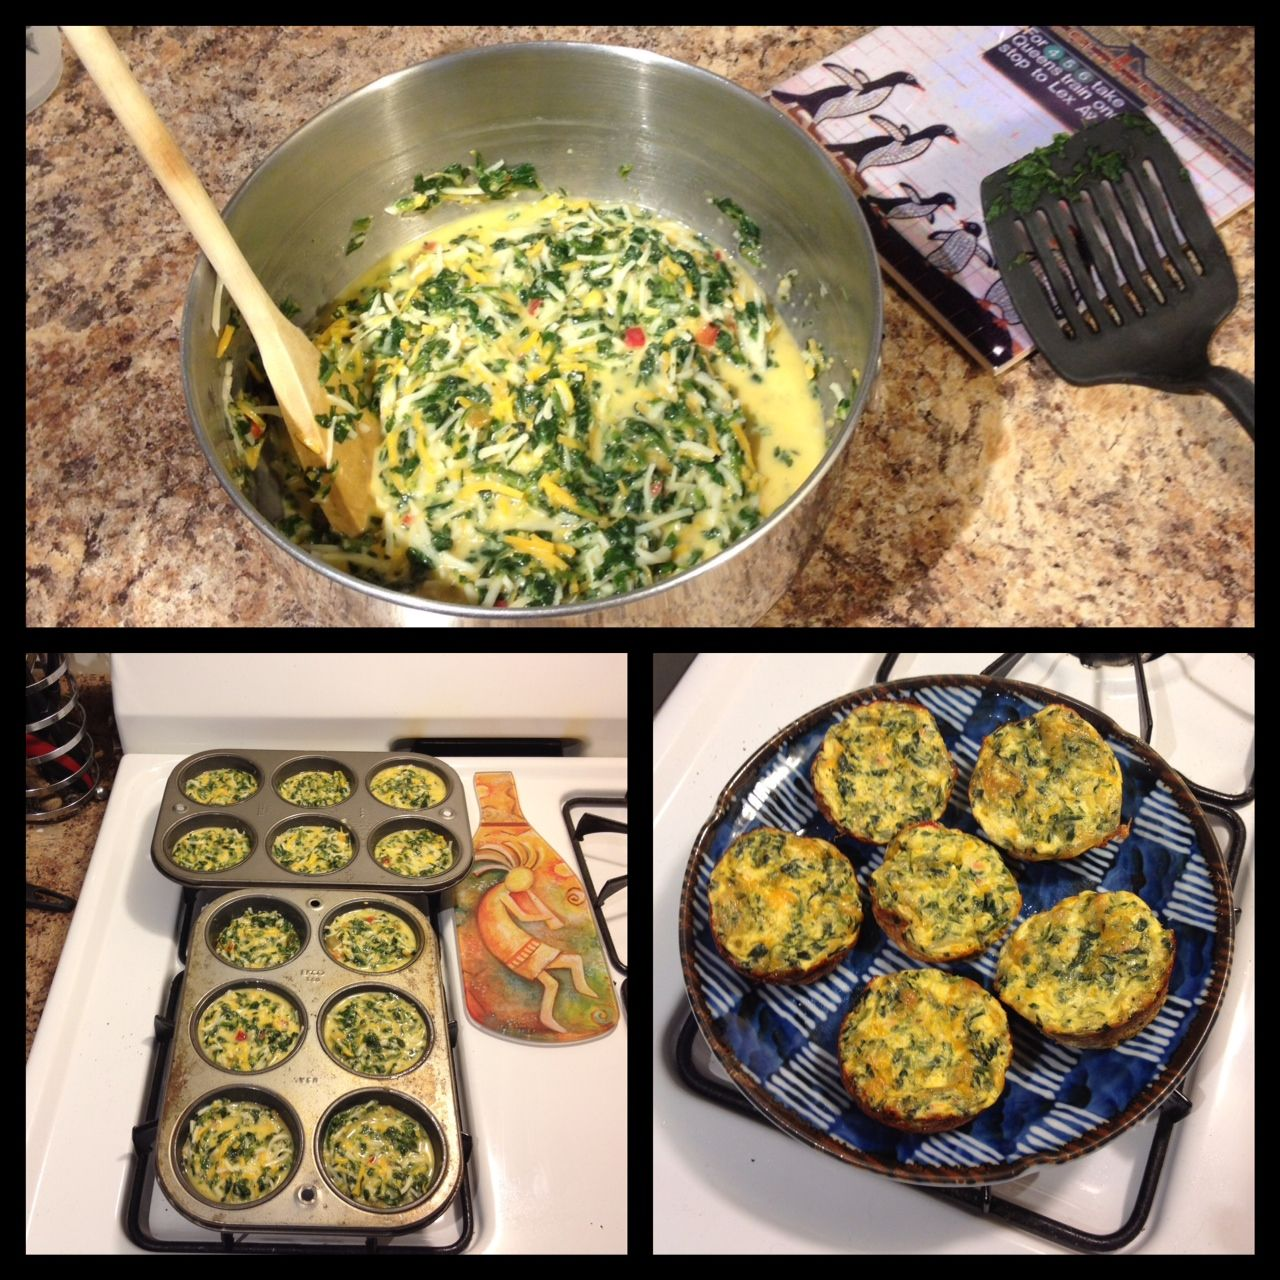 My Homemade Healthy Quiche Cups 1 Package Of Frozen